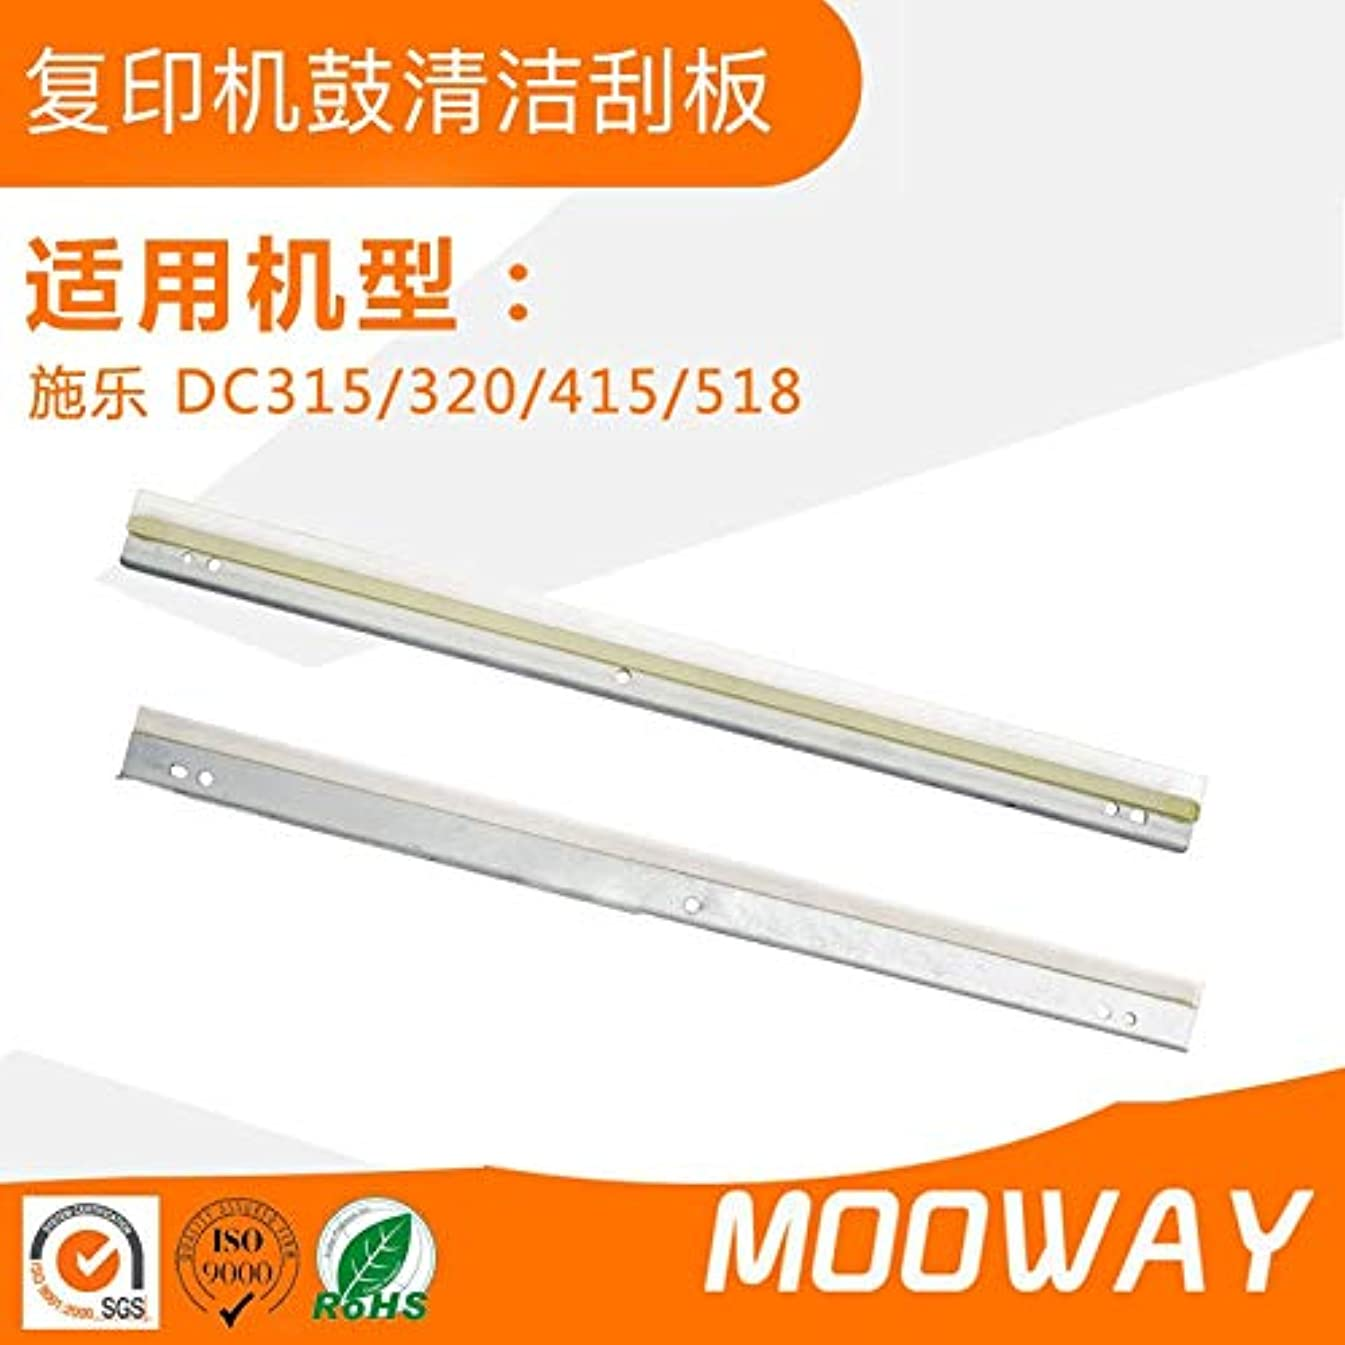 Printer Parts Compatible Cleaning Blade for Xerox Copier DC315 320 415 518 Drum Cleaning Scraper Blade